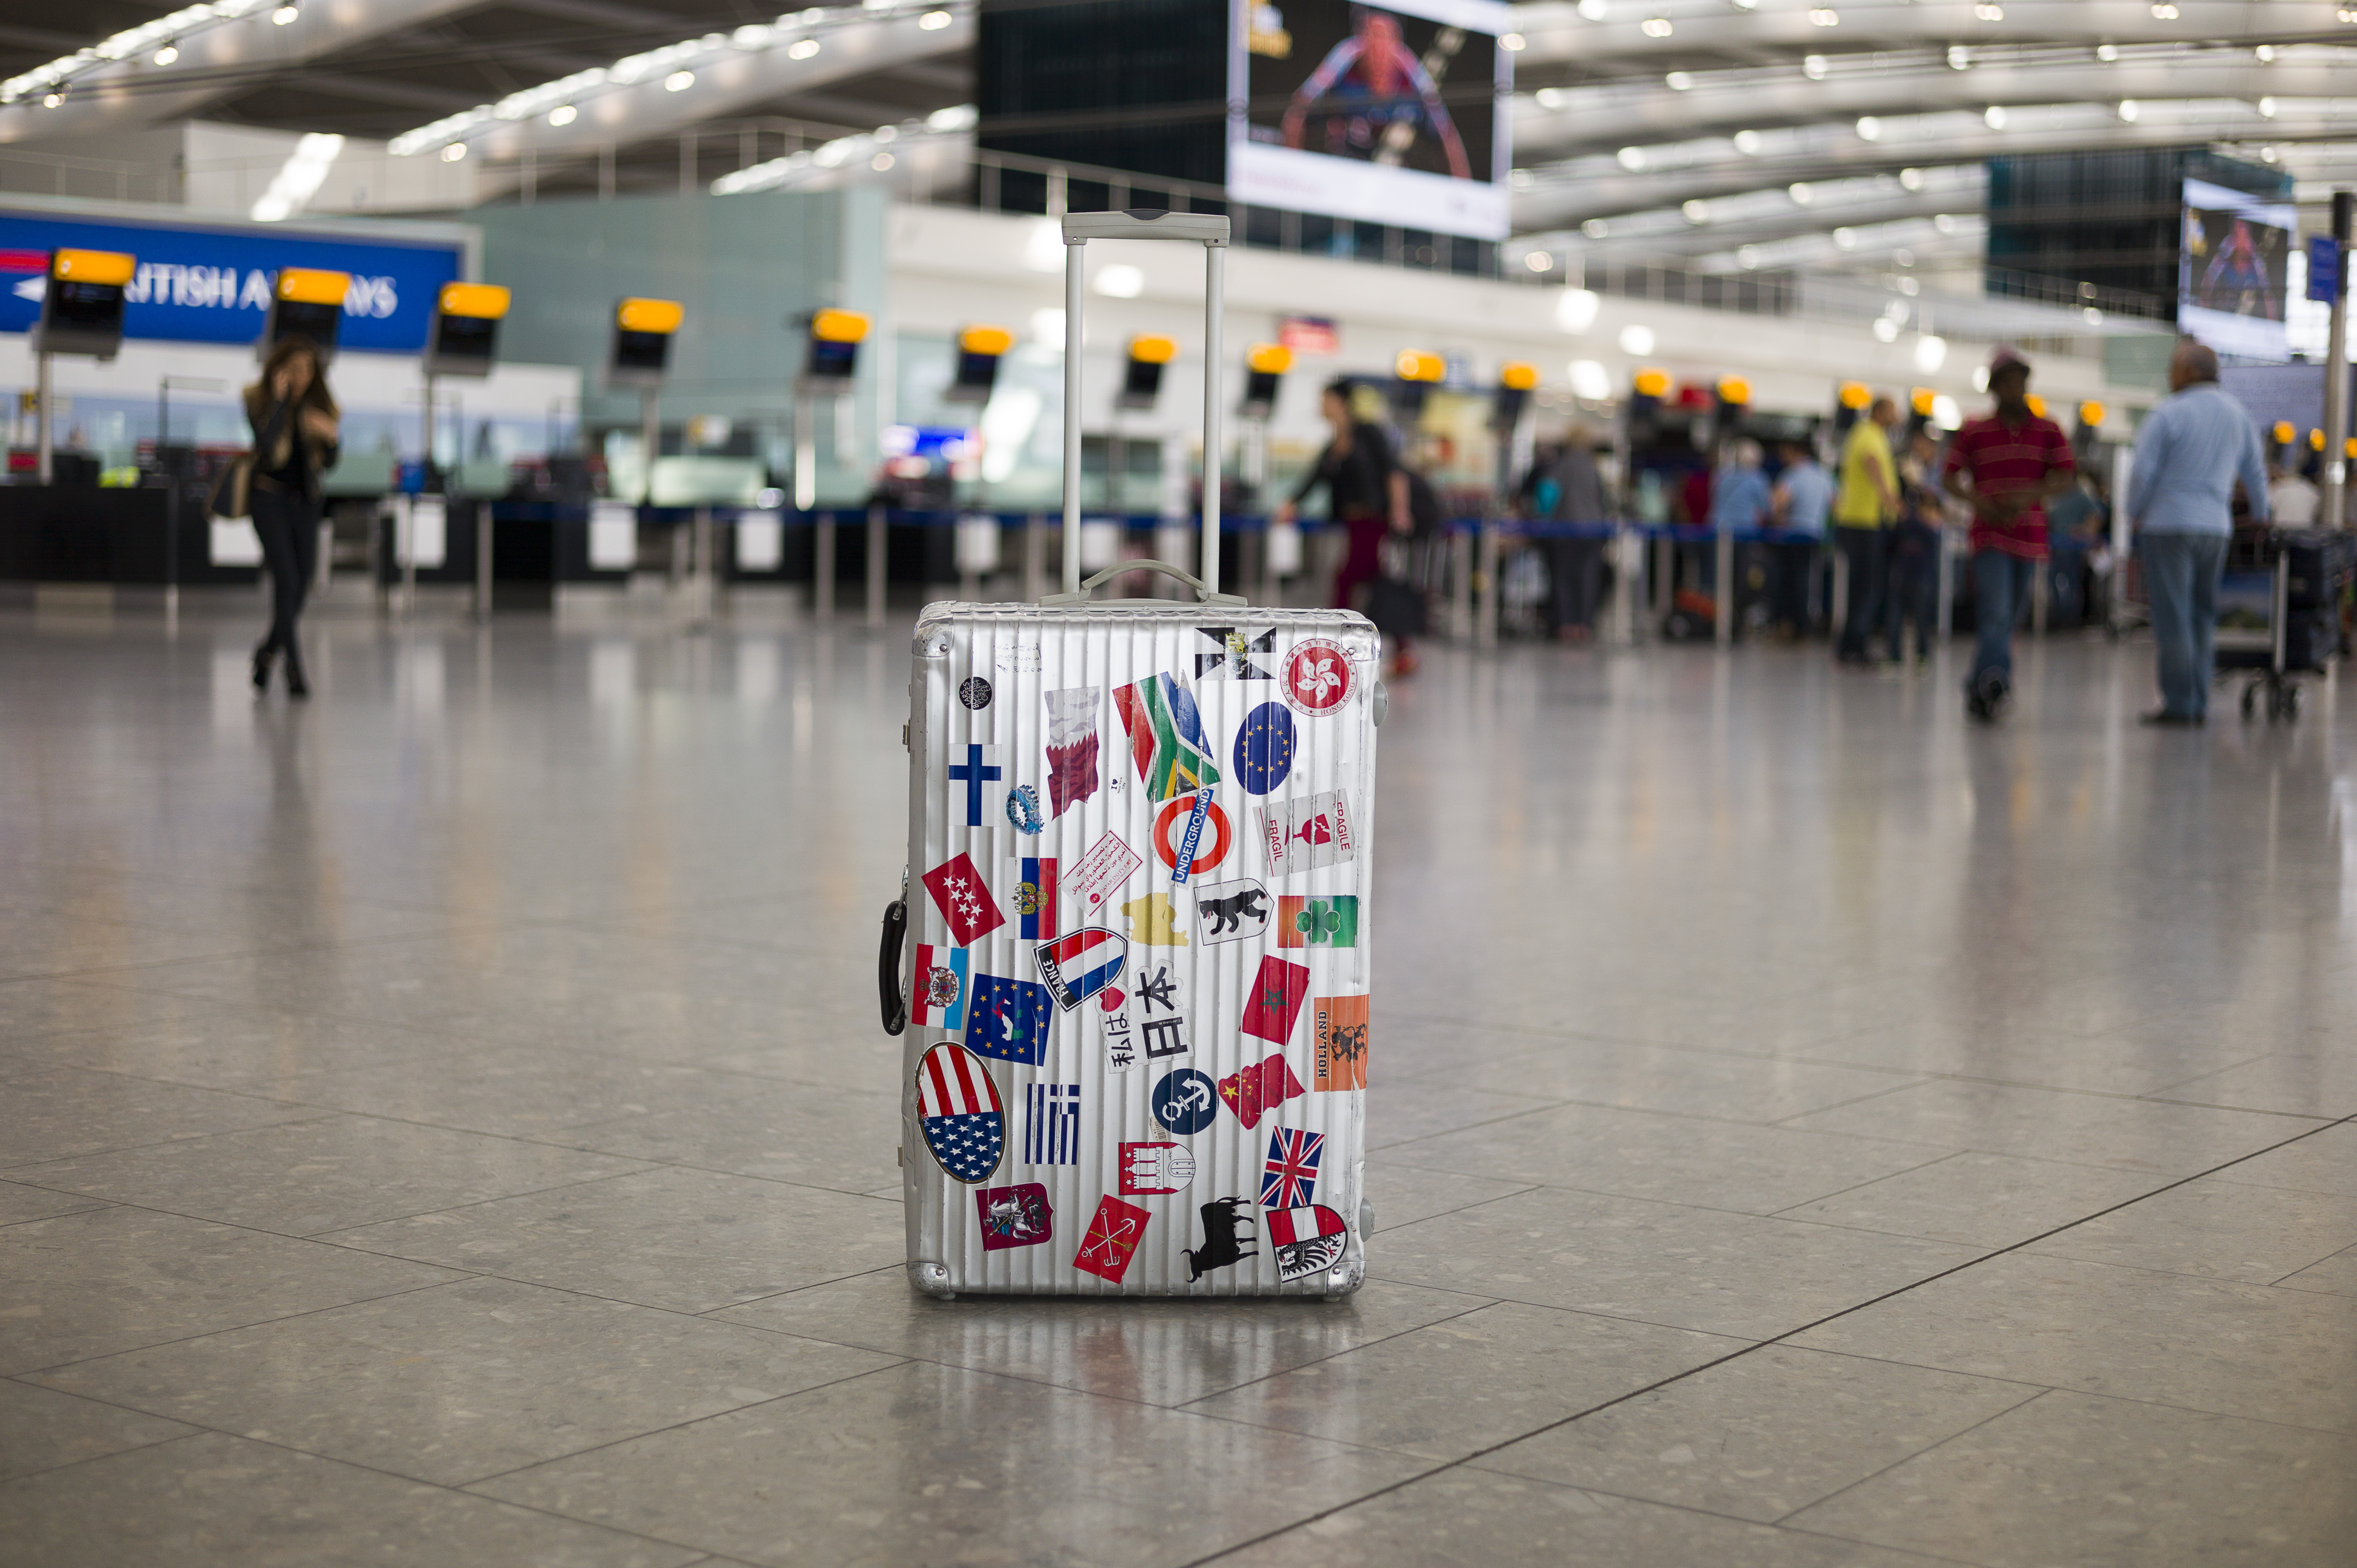 Suitcase with worldwide stickers